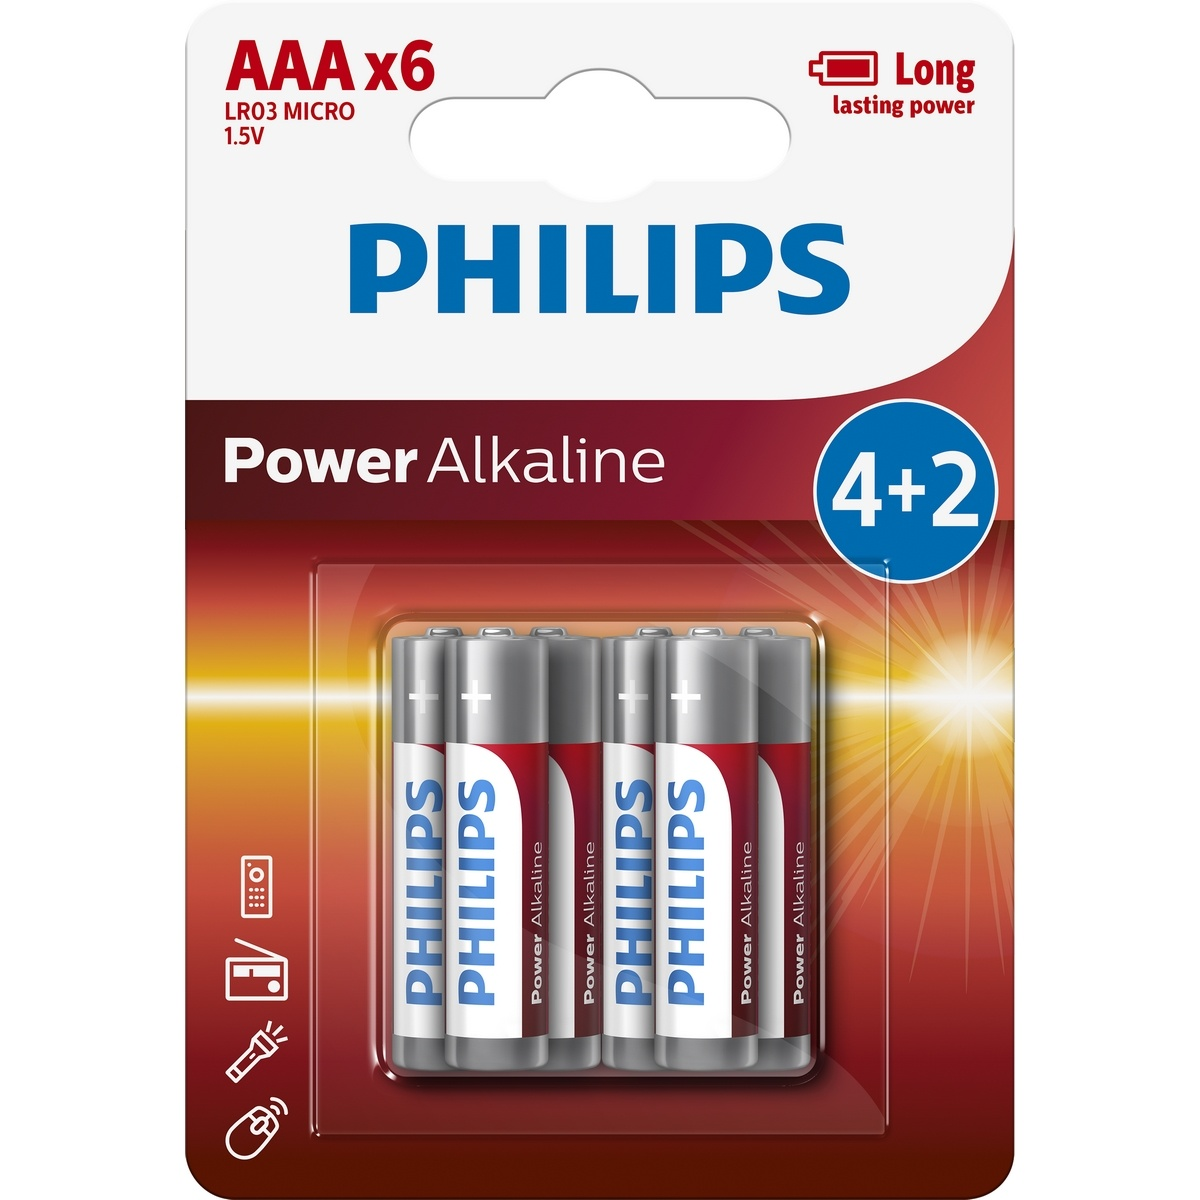 Philips PowerLife AAA 6ks LR03P6BP10